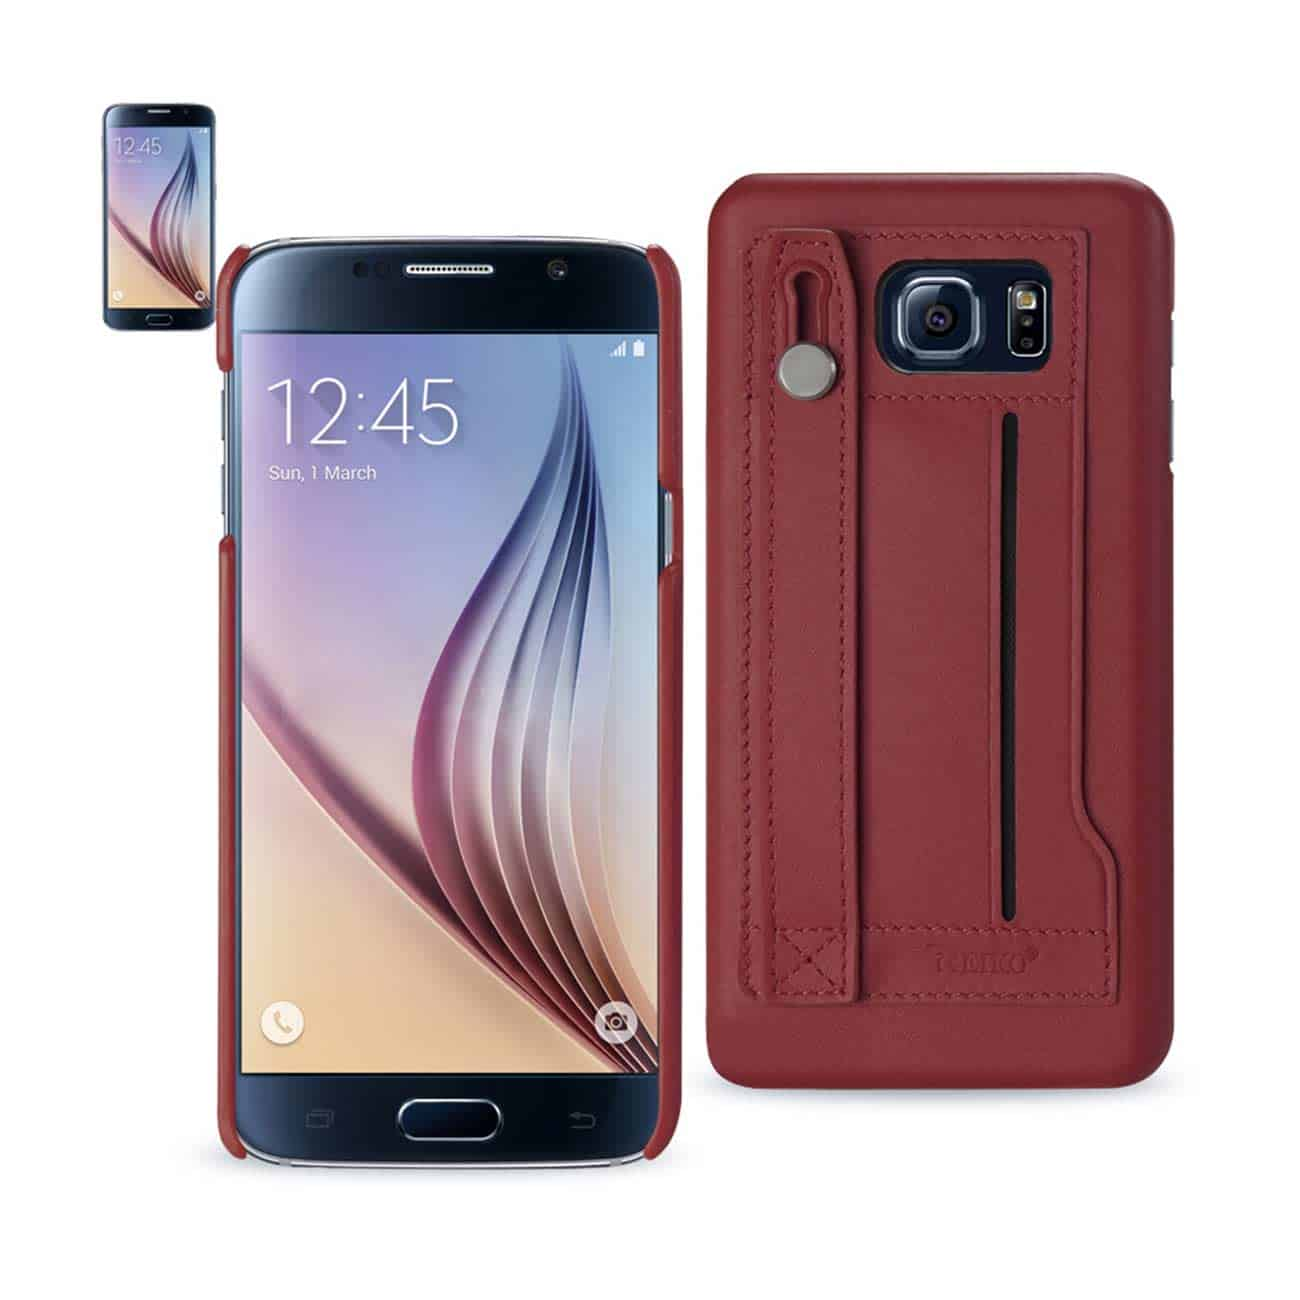 SAMSUNG GALAXY S6 GENUINE LEATHER HAND STRAP CASE IN BURGUNDY